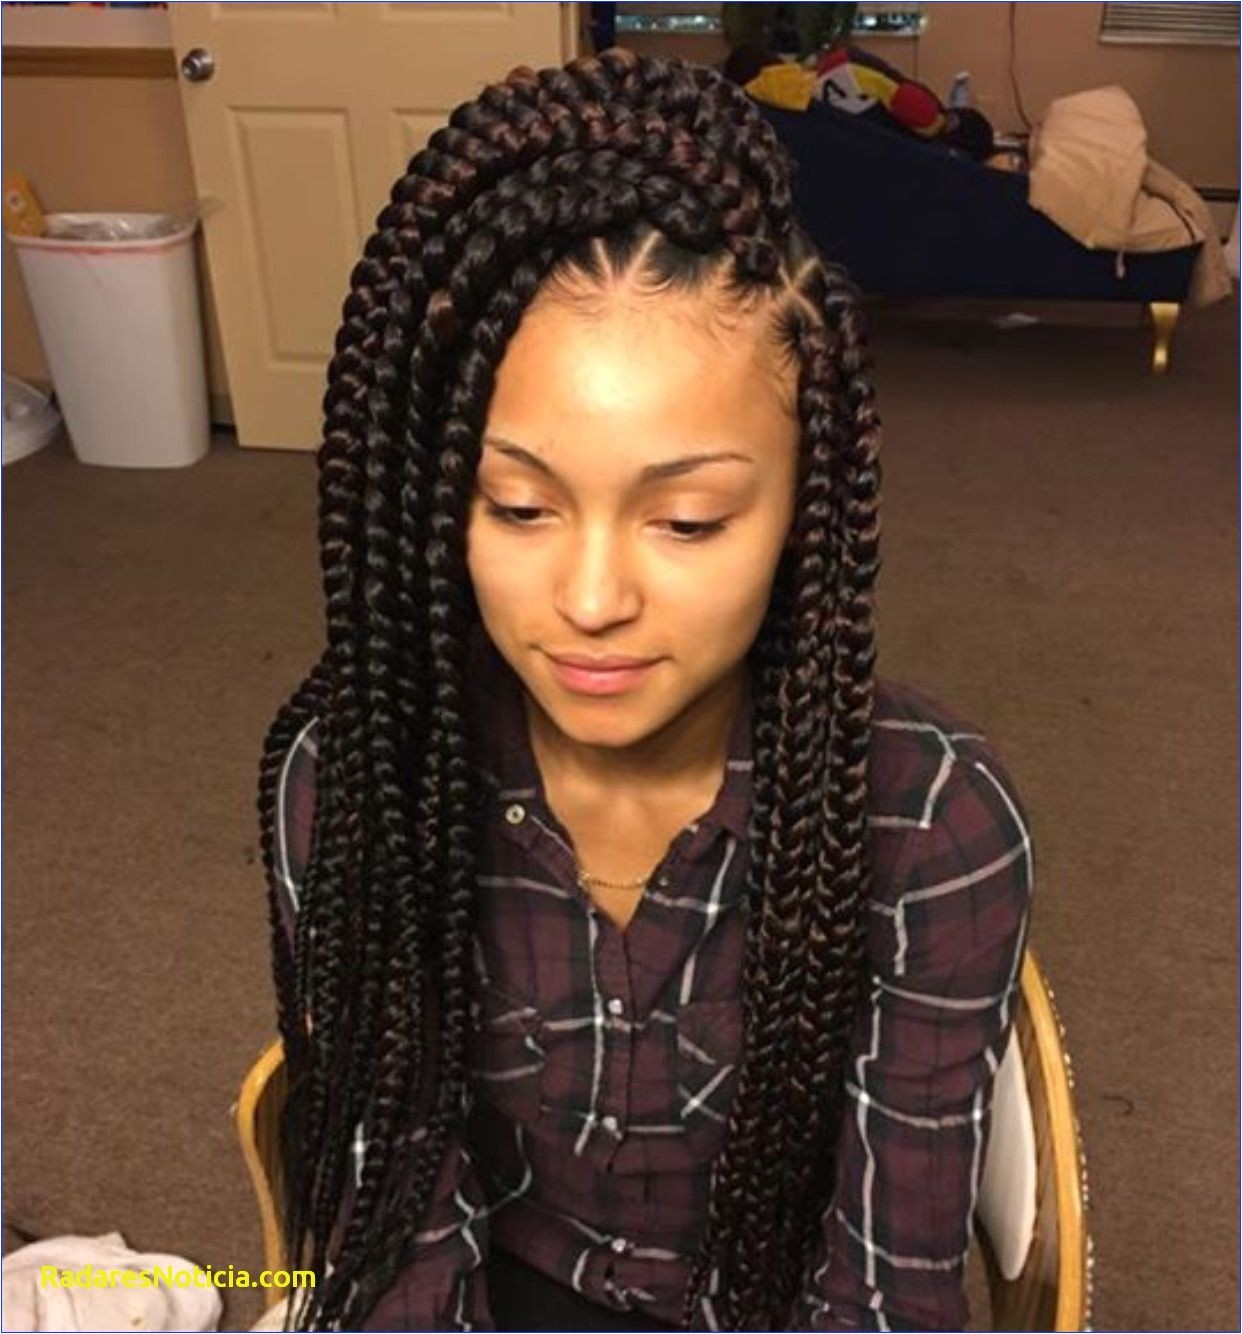 Lil Girl Braided Hairstyles with Beads Kids Braids Styles with Beads Inspirational Braided Hairstyles for